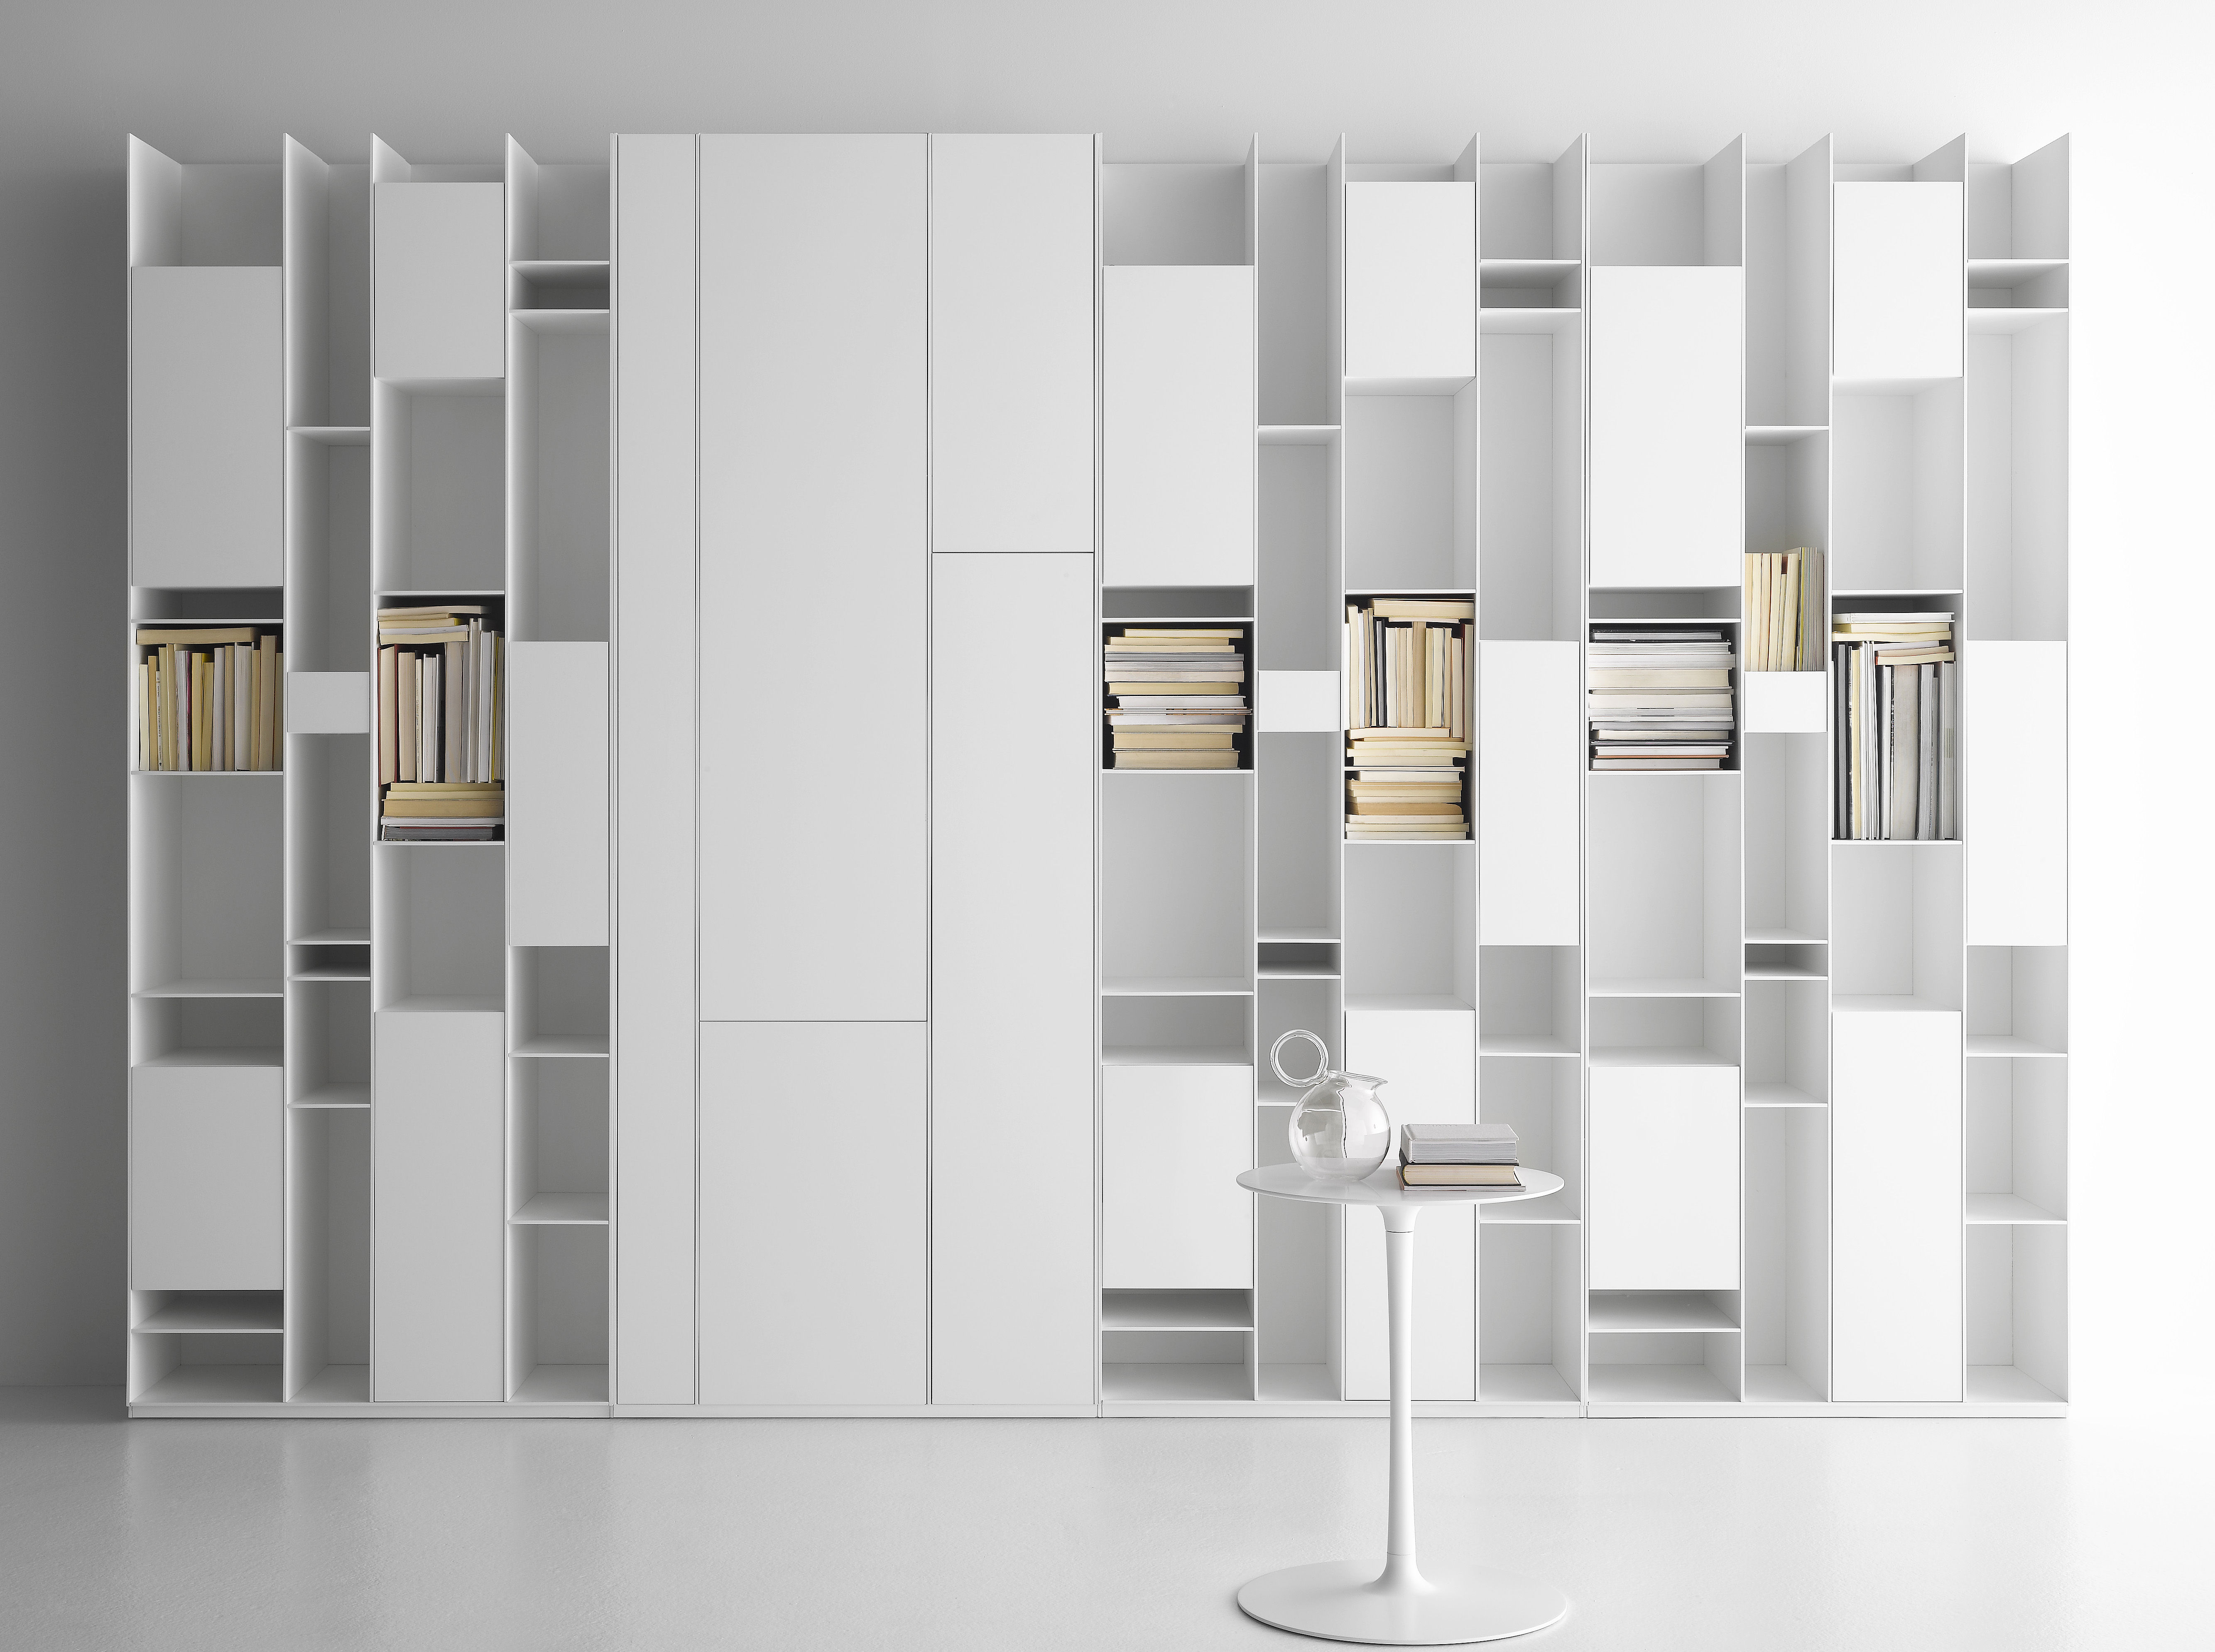 Wonderful image of  > Random Cabinet Bookcase Storage unit / Bookcase by MDF Italia with #796A52 color and 5334x3978 pixels